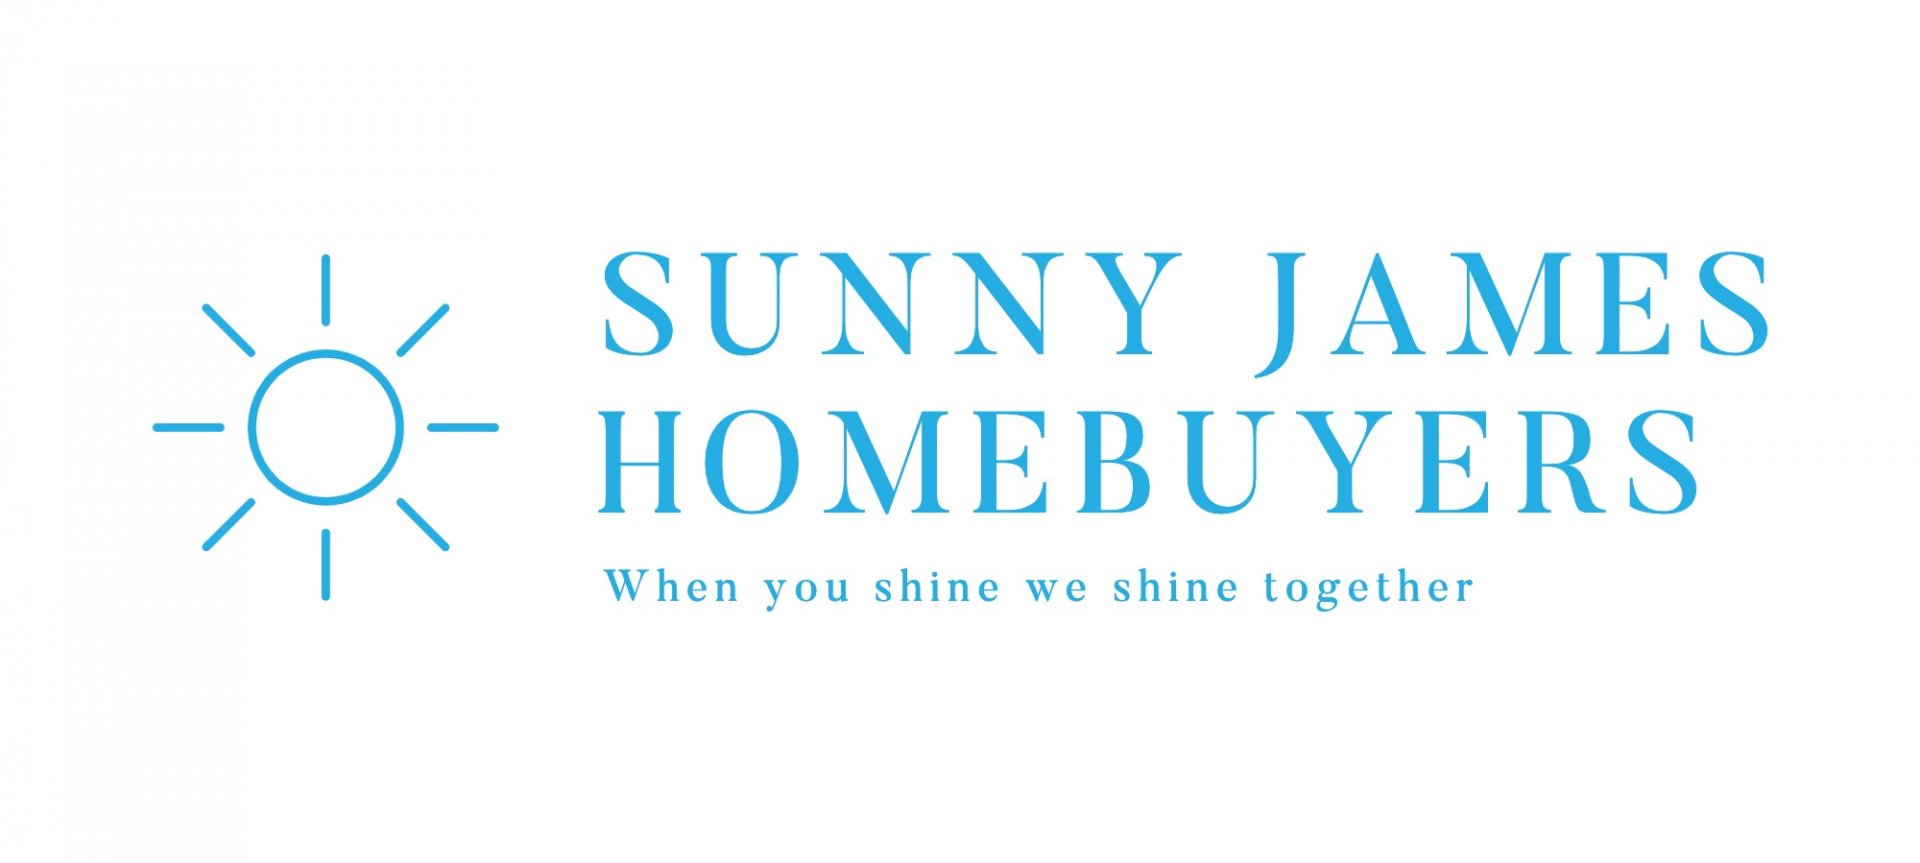 Sunny James HomeBuyers  logo